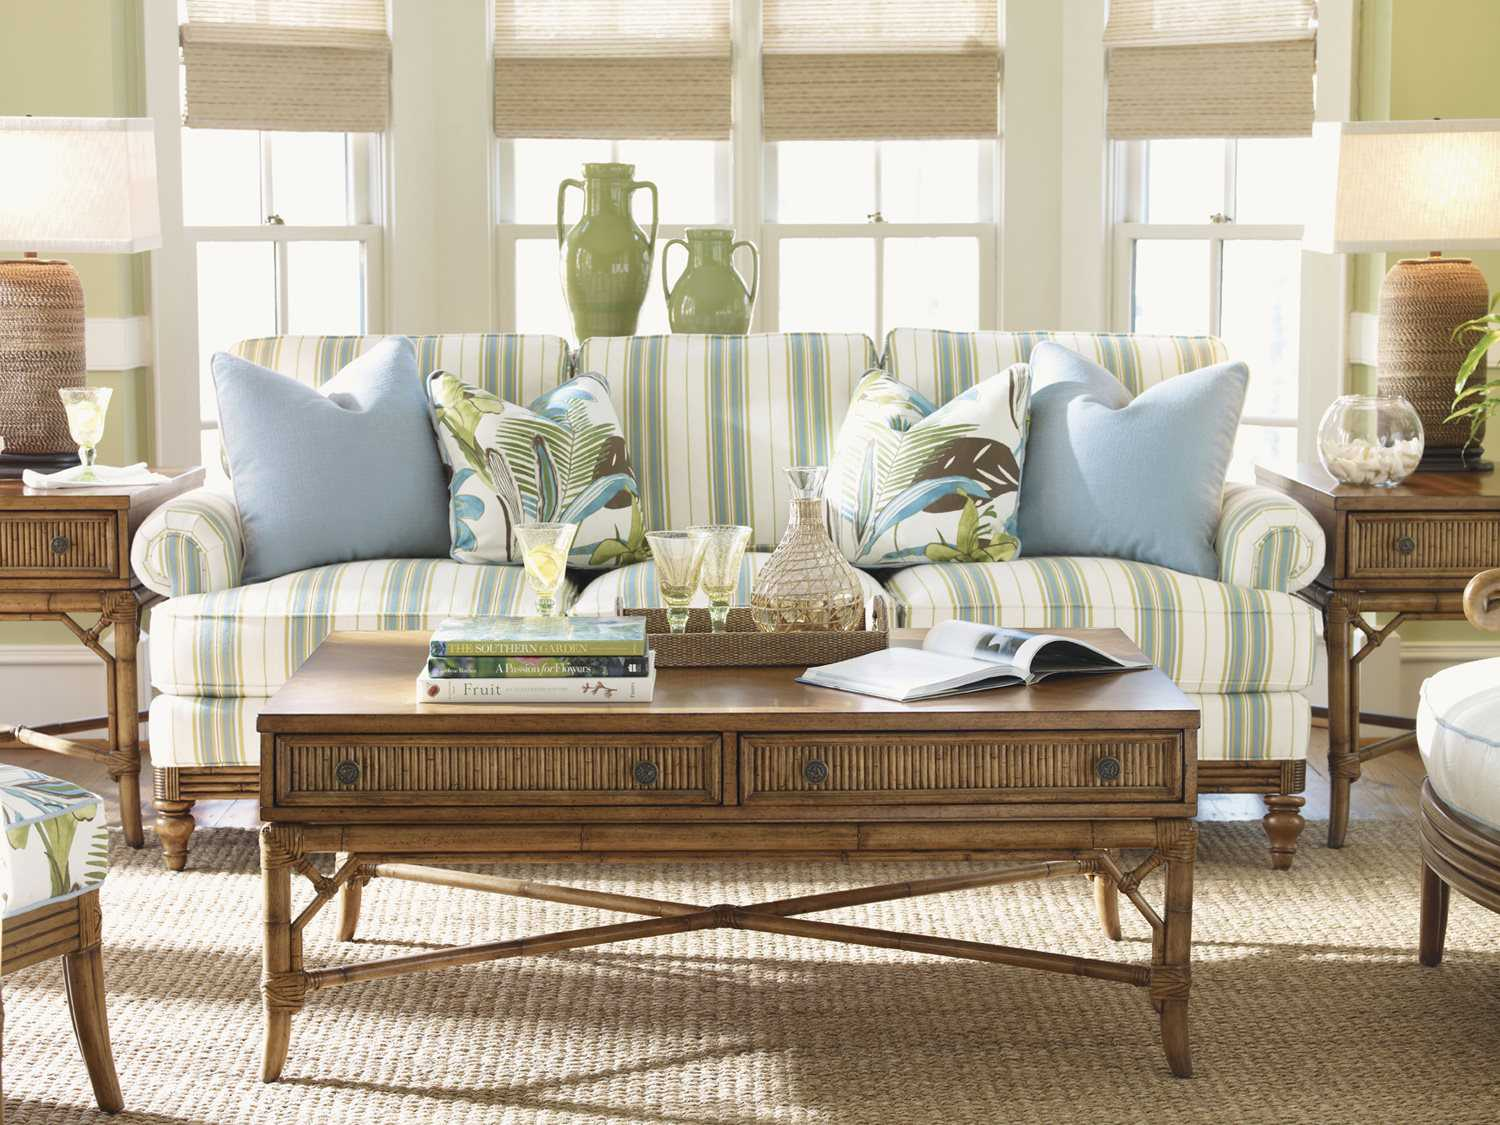 Tommy bahama beach house living room set 1604 33 set2 for Beach style living room furniture